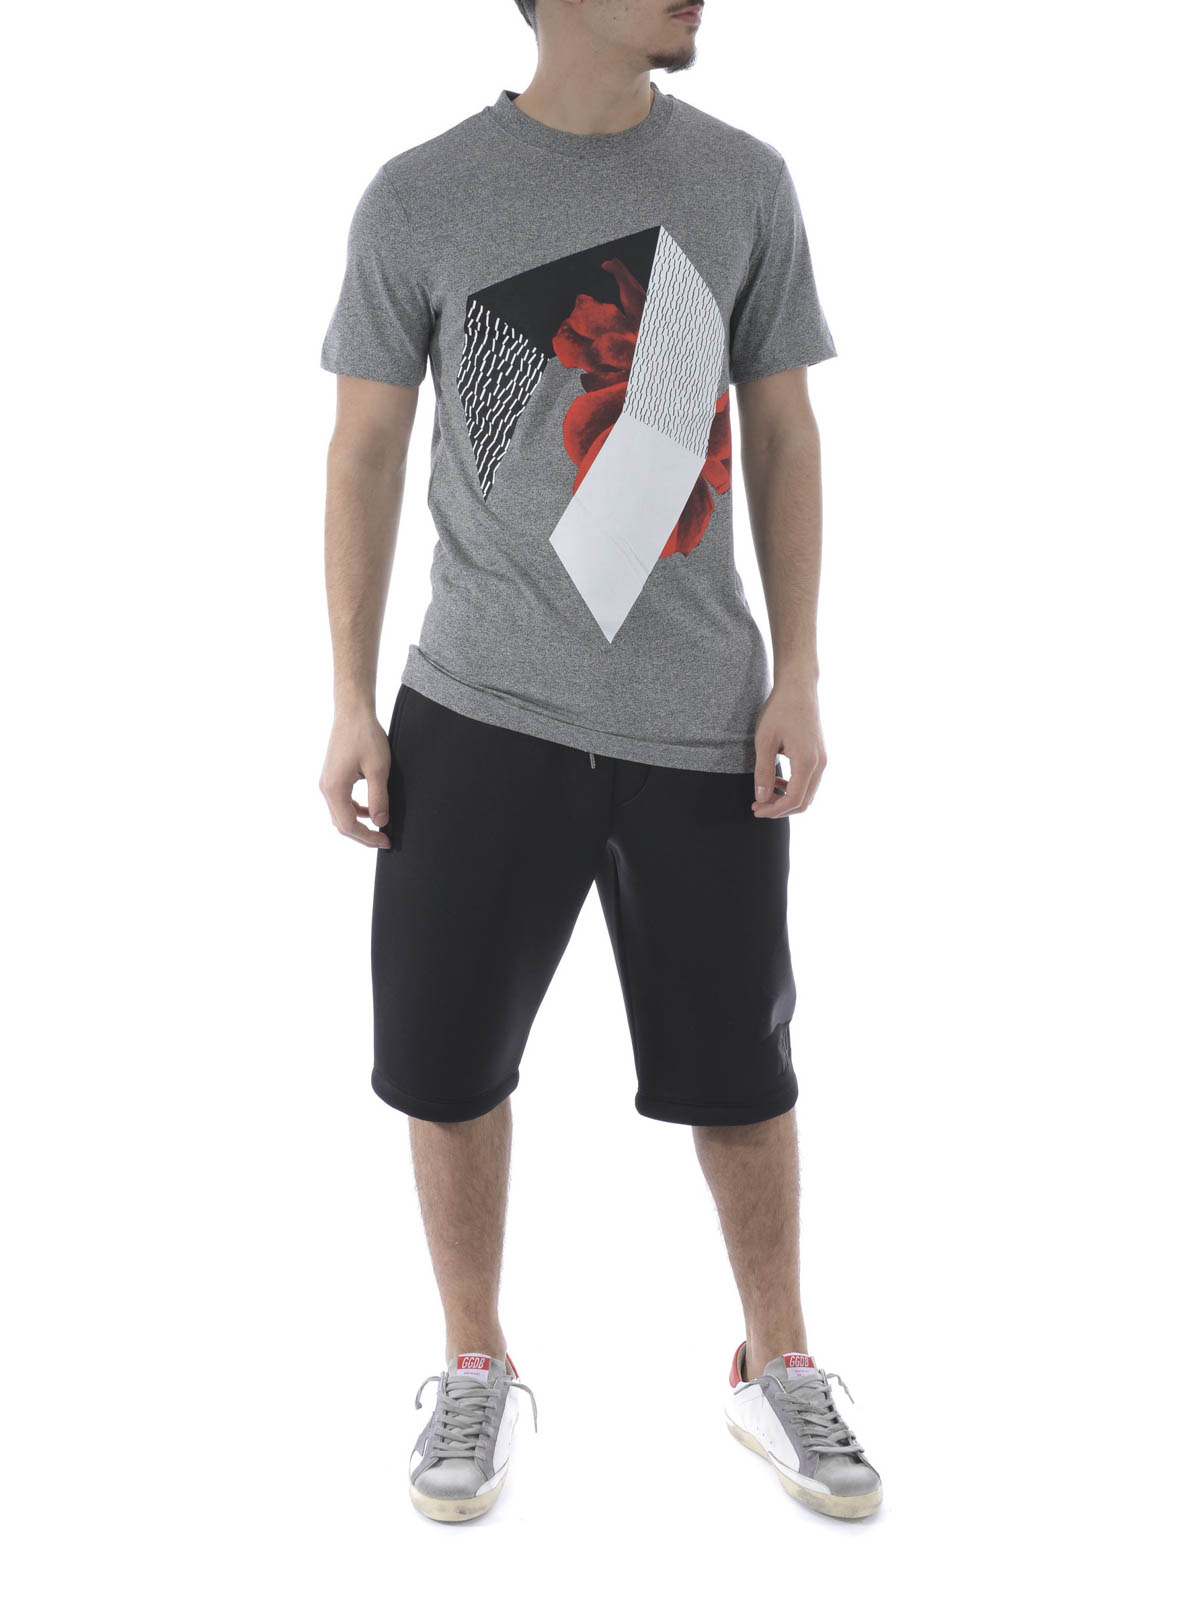 Geometric printed t shirt by mcq t shirts ikrix for Online printed t shirts